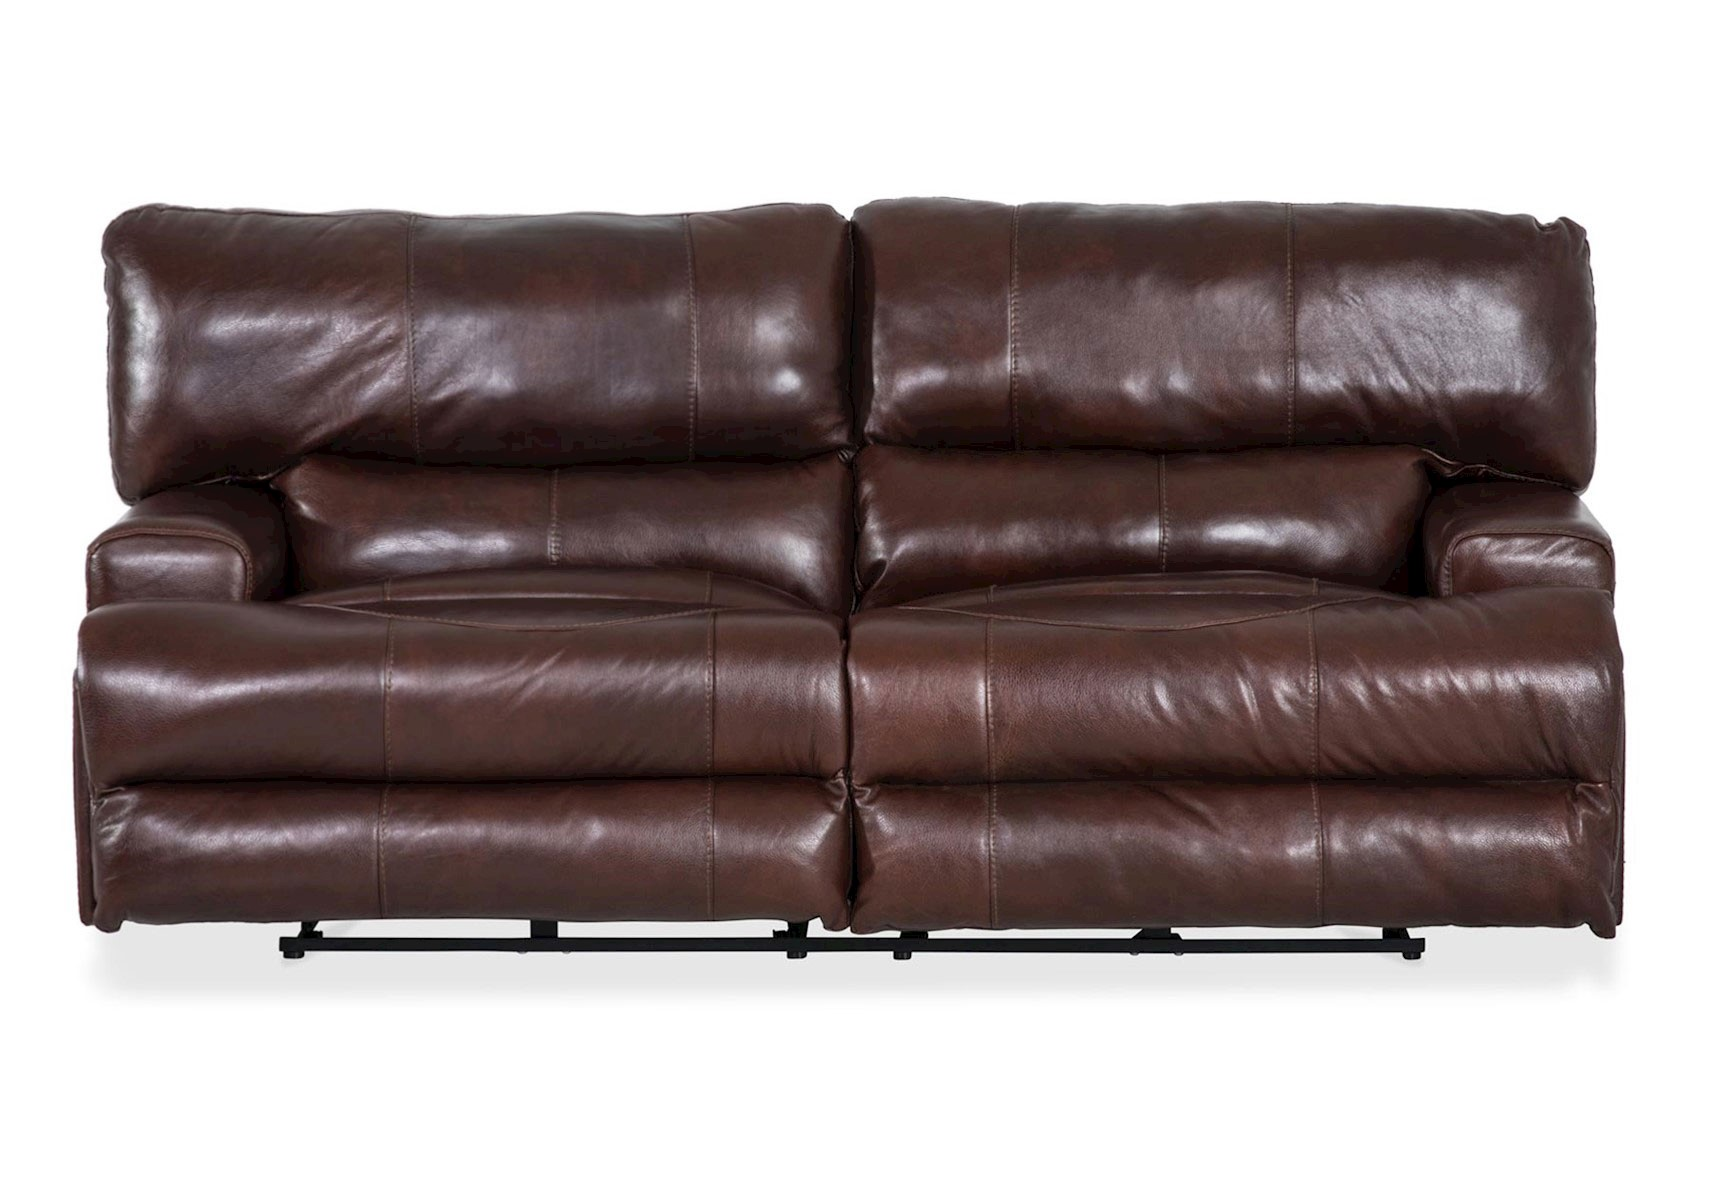 Wembley Dual Reclining Sofa With Power